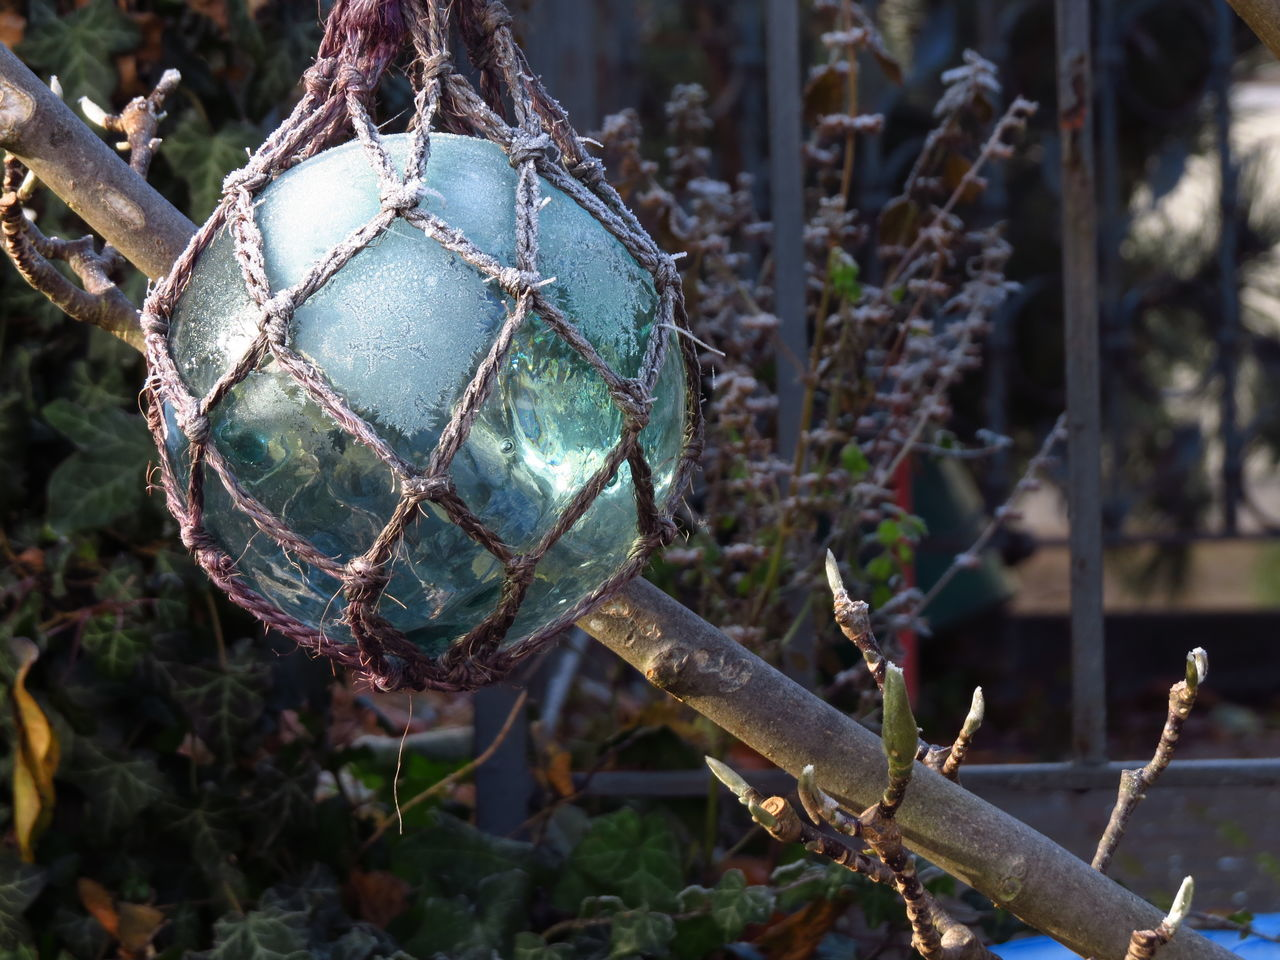 Cold Cold Days Cold Temperature Cold Weather Decor Decoration Frost Frosty Frosty Mornings Frozen Frozen Nature Glass Decorations Glassball Hoar Frost Hoarfrost Mirror Ball Rime White Frost Winter Winter Scene Winter Scenery Winter Season Winter Wonderland Winter_collection Wintertime